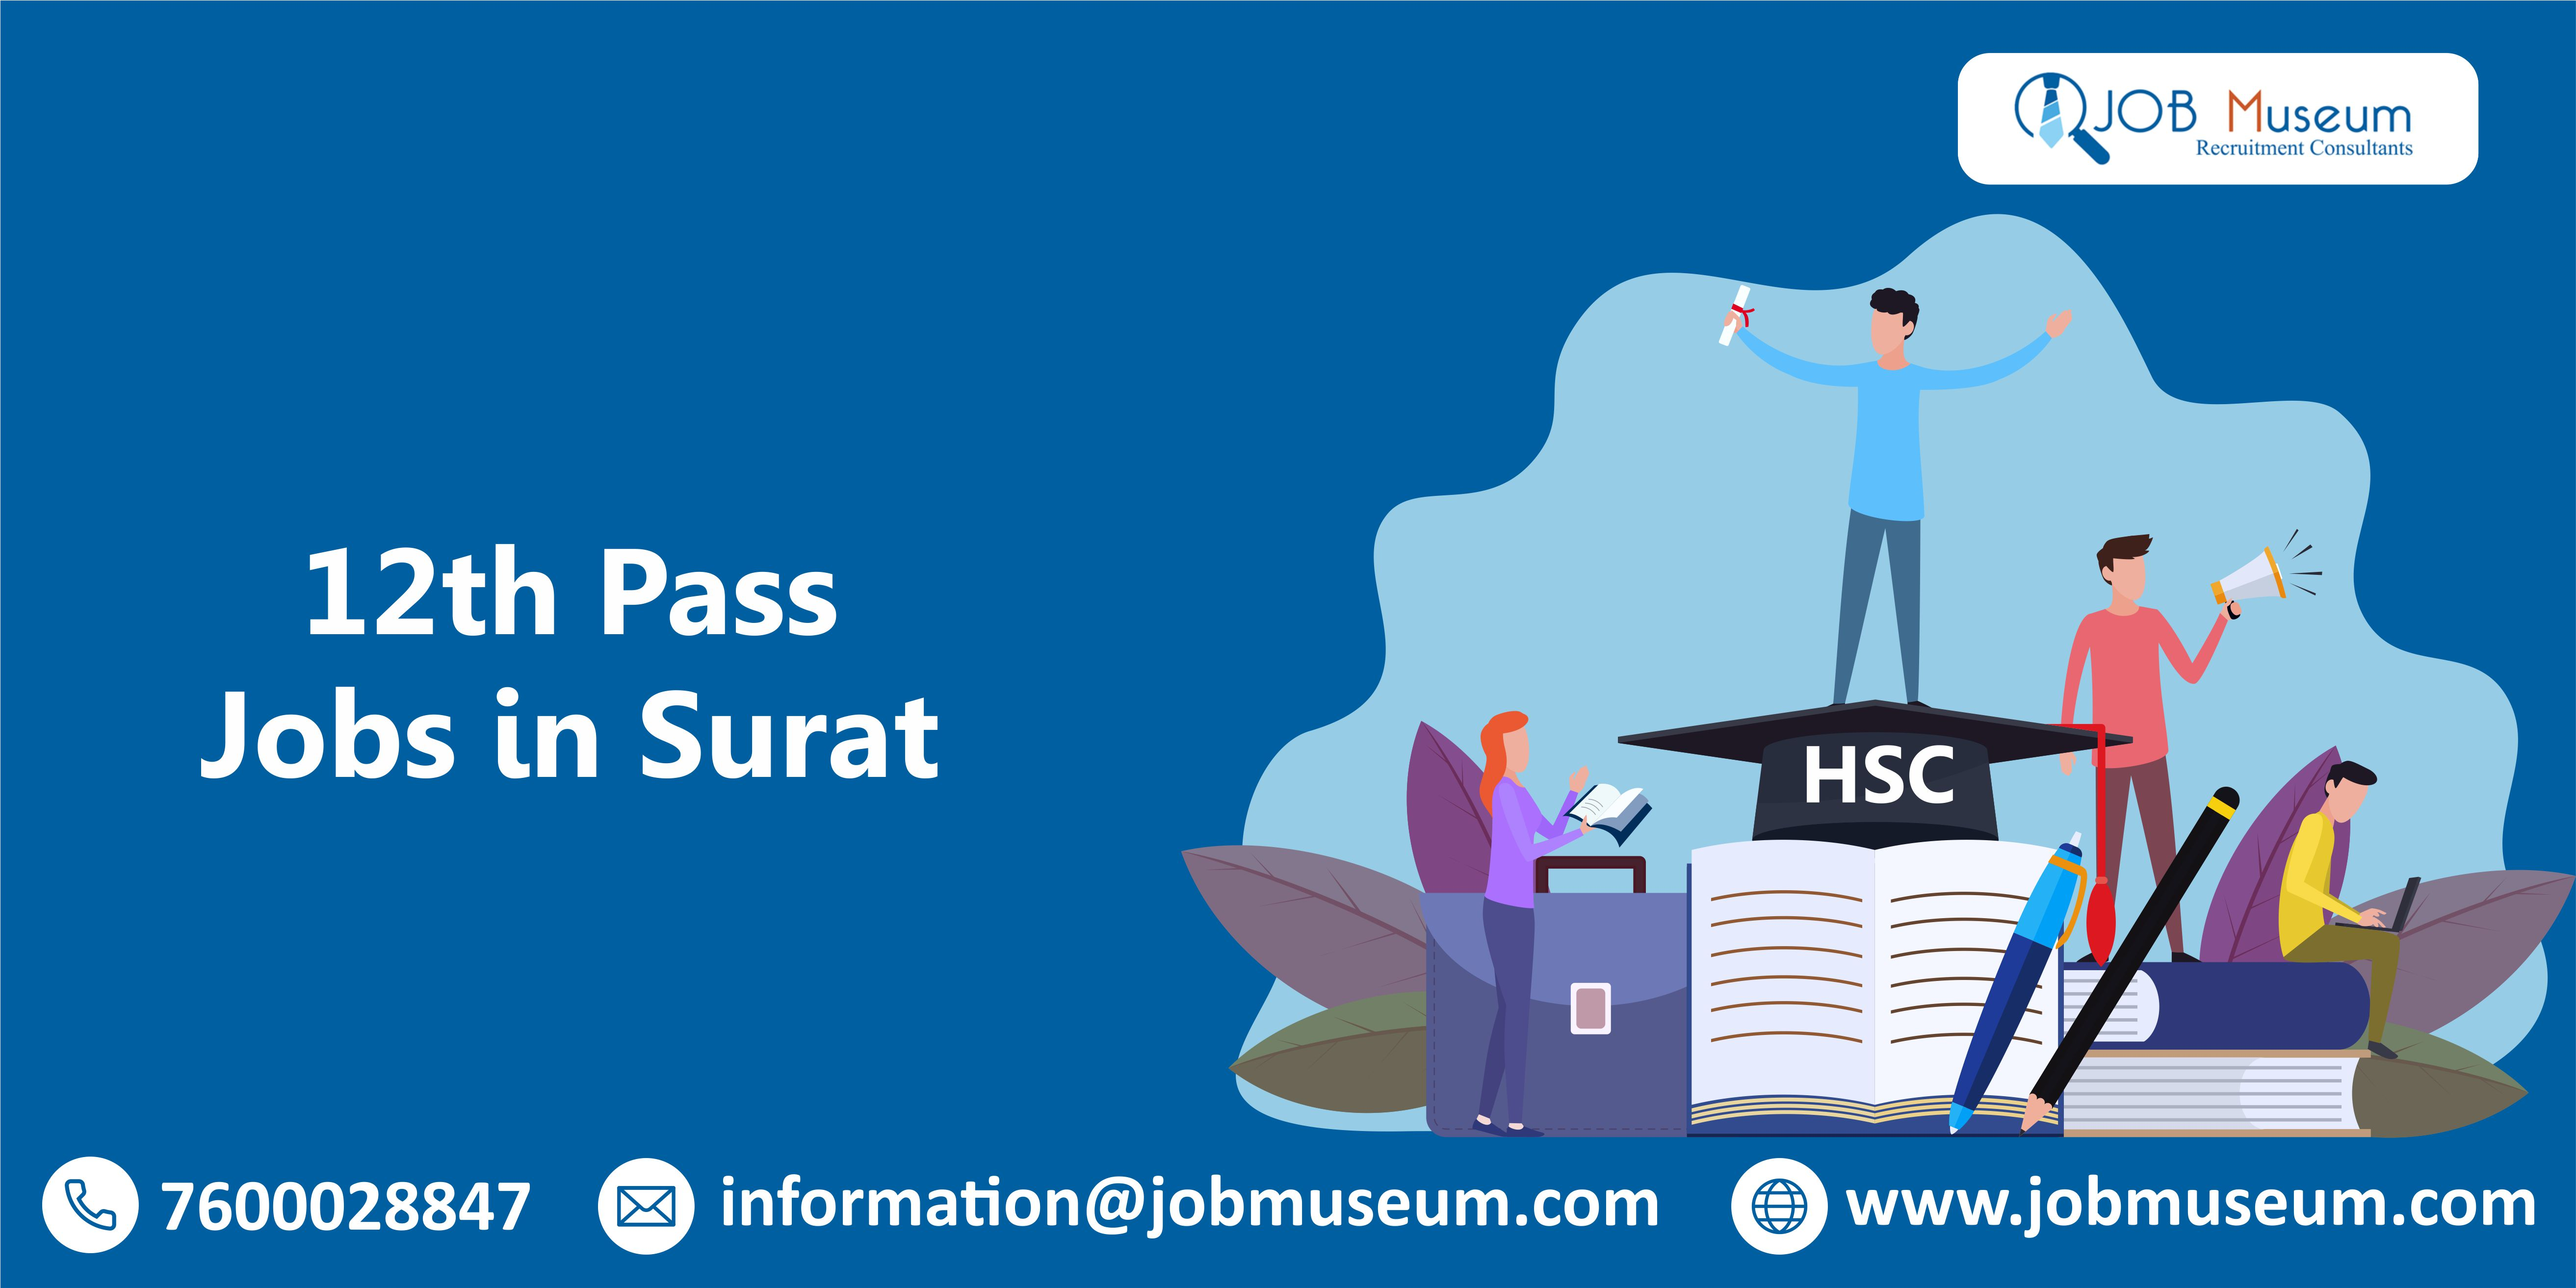 Job in Surat for 12th Pass for Part Time and Freshers